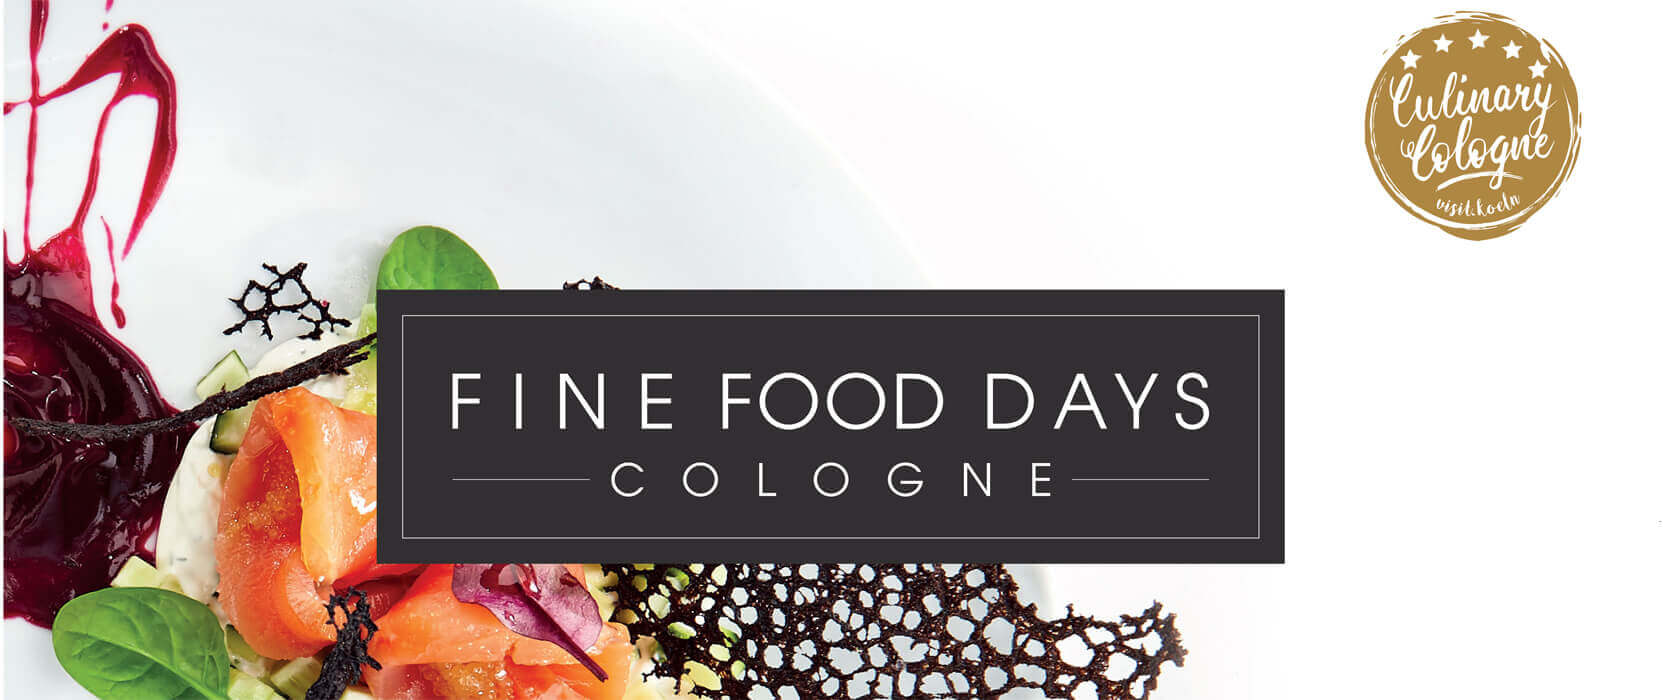 Fine Food Days Cologne